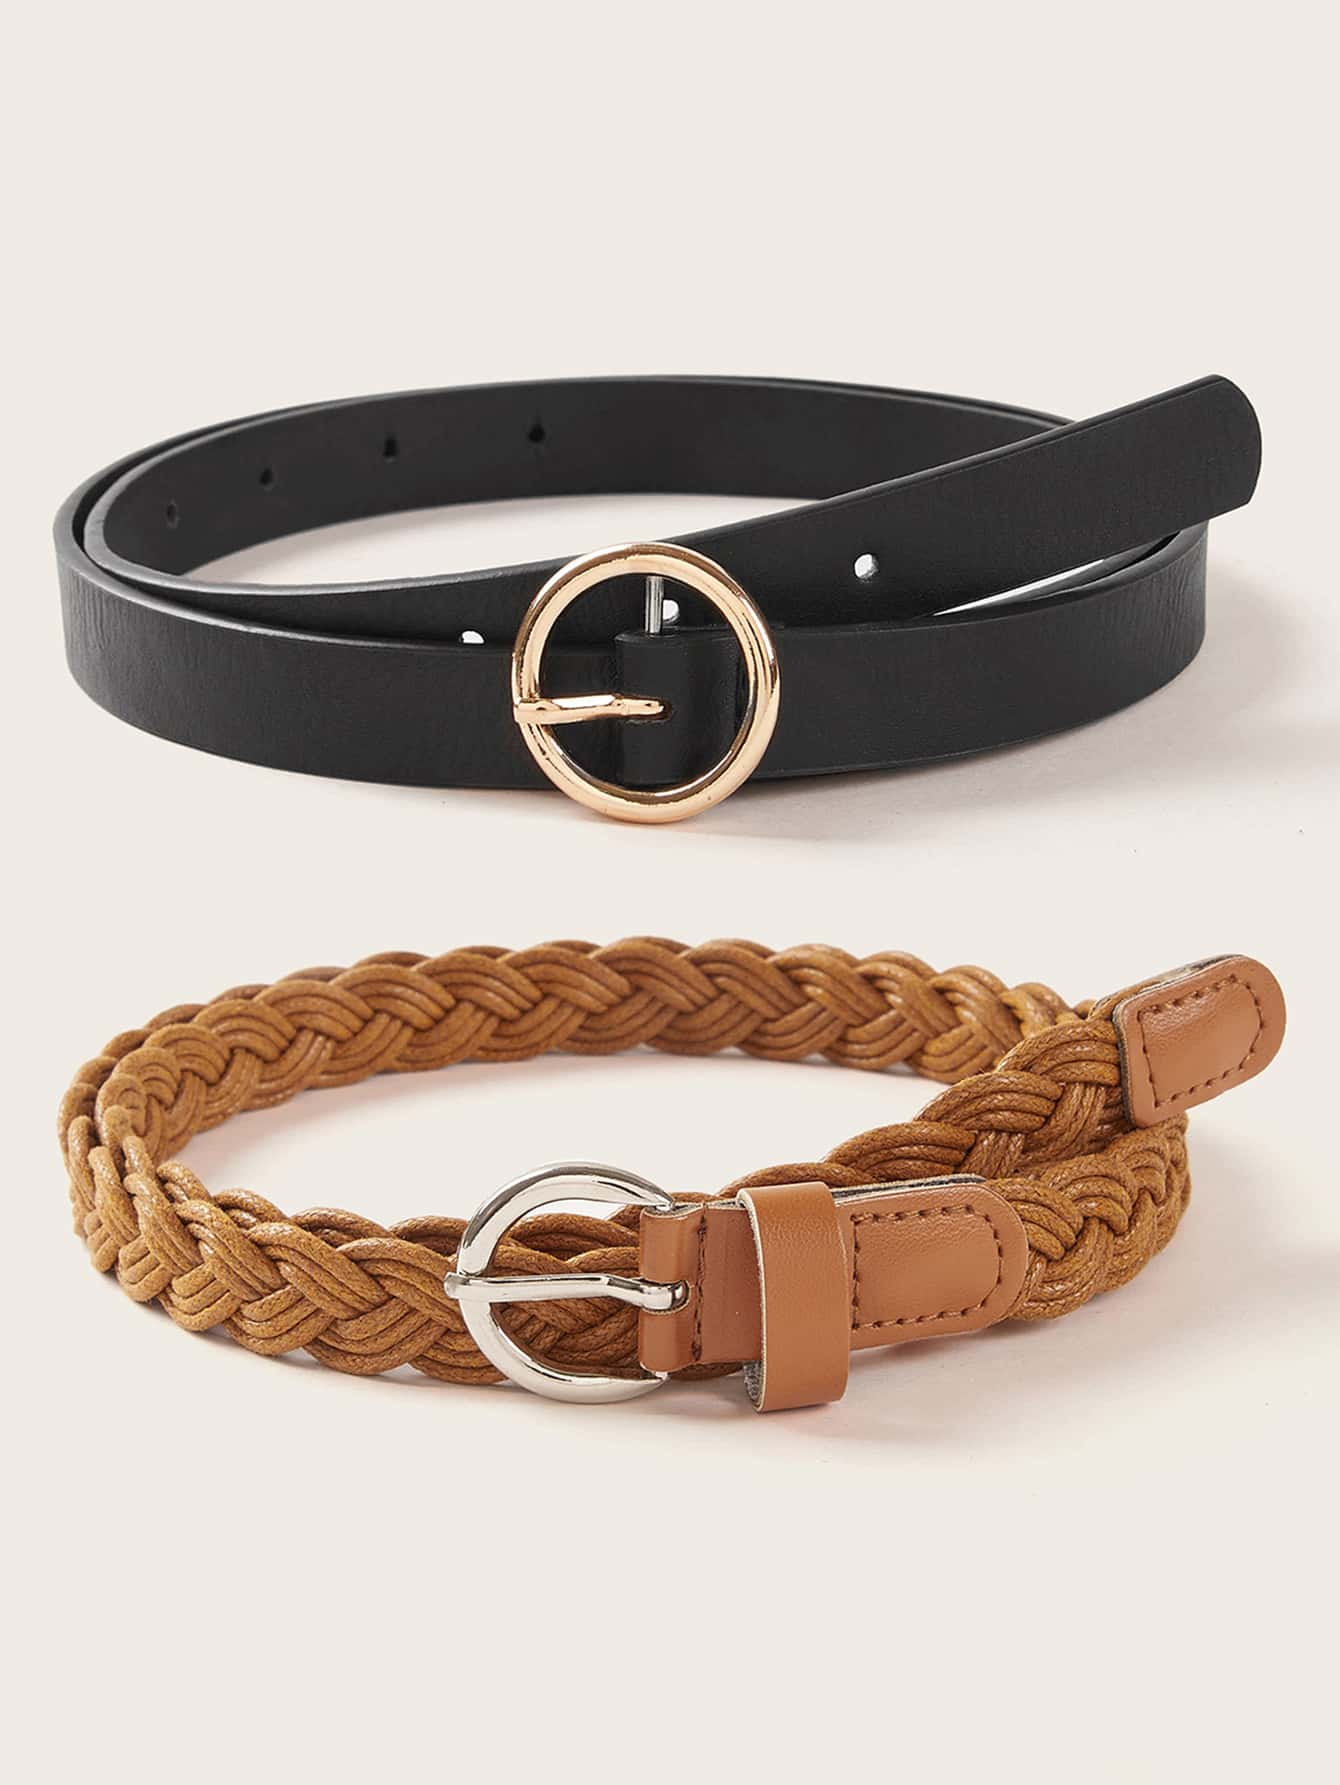 2pcs Braided O-ring Buckle Belt - FLJ CORPORATIONS